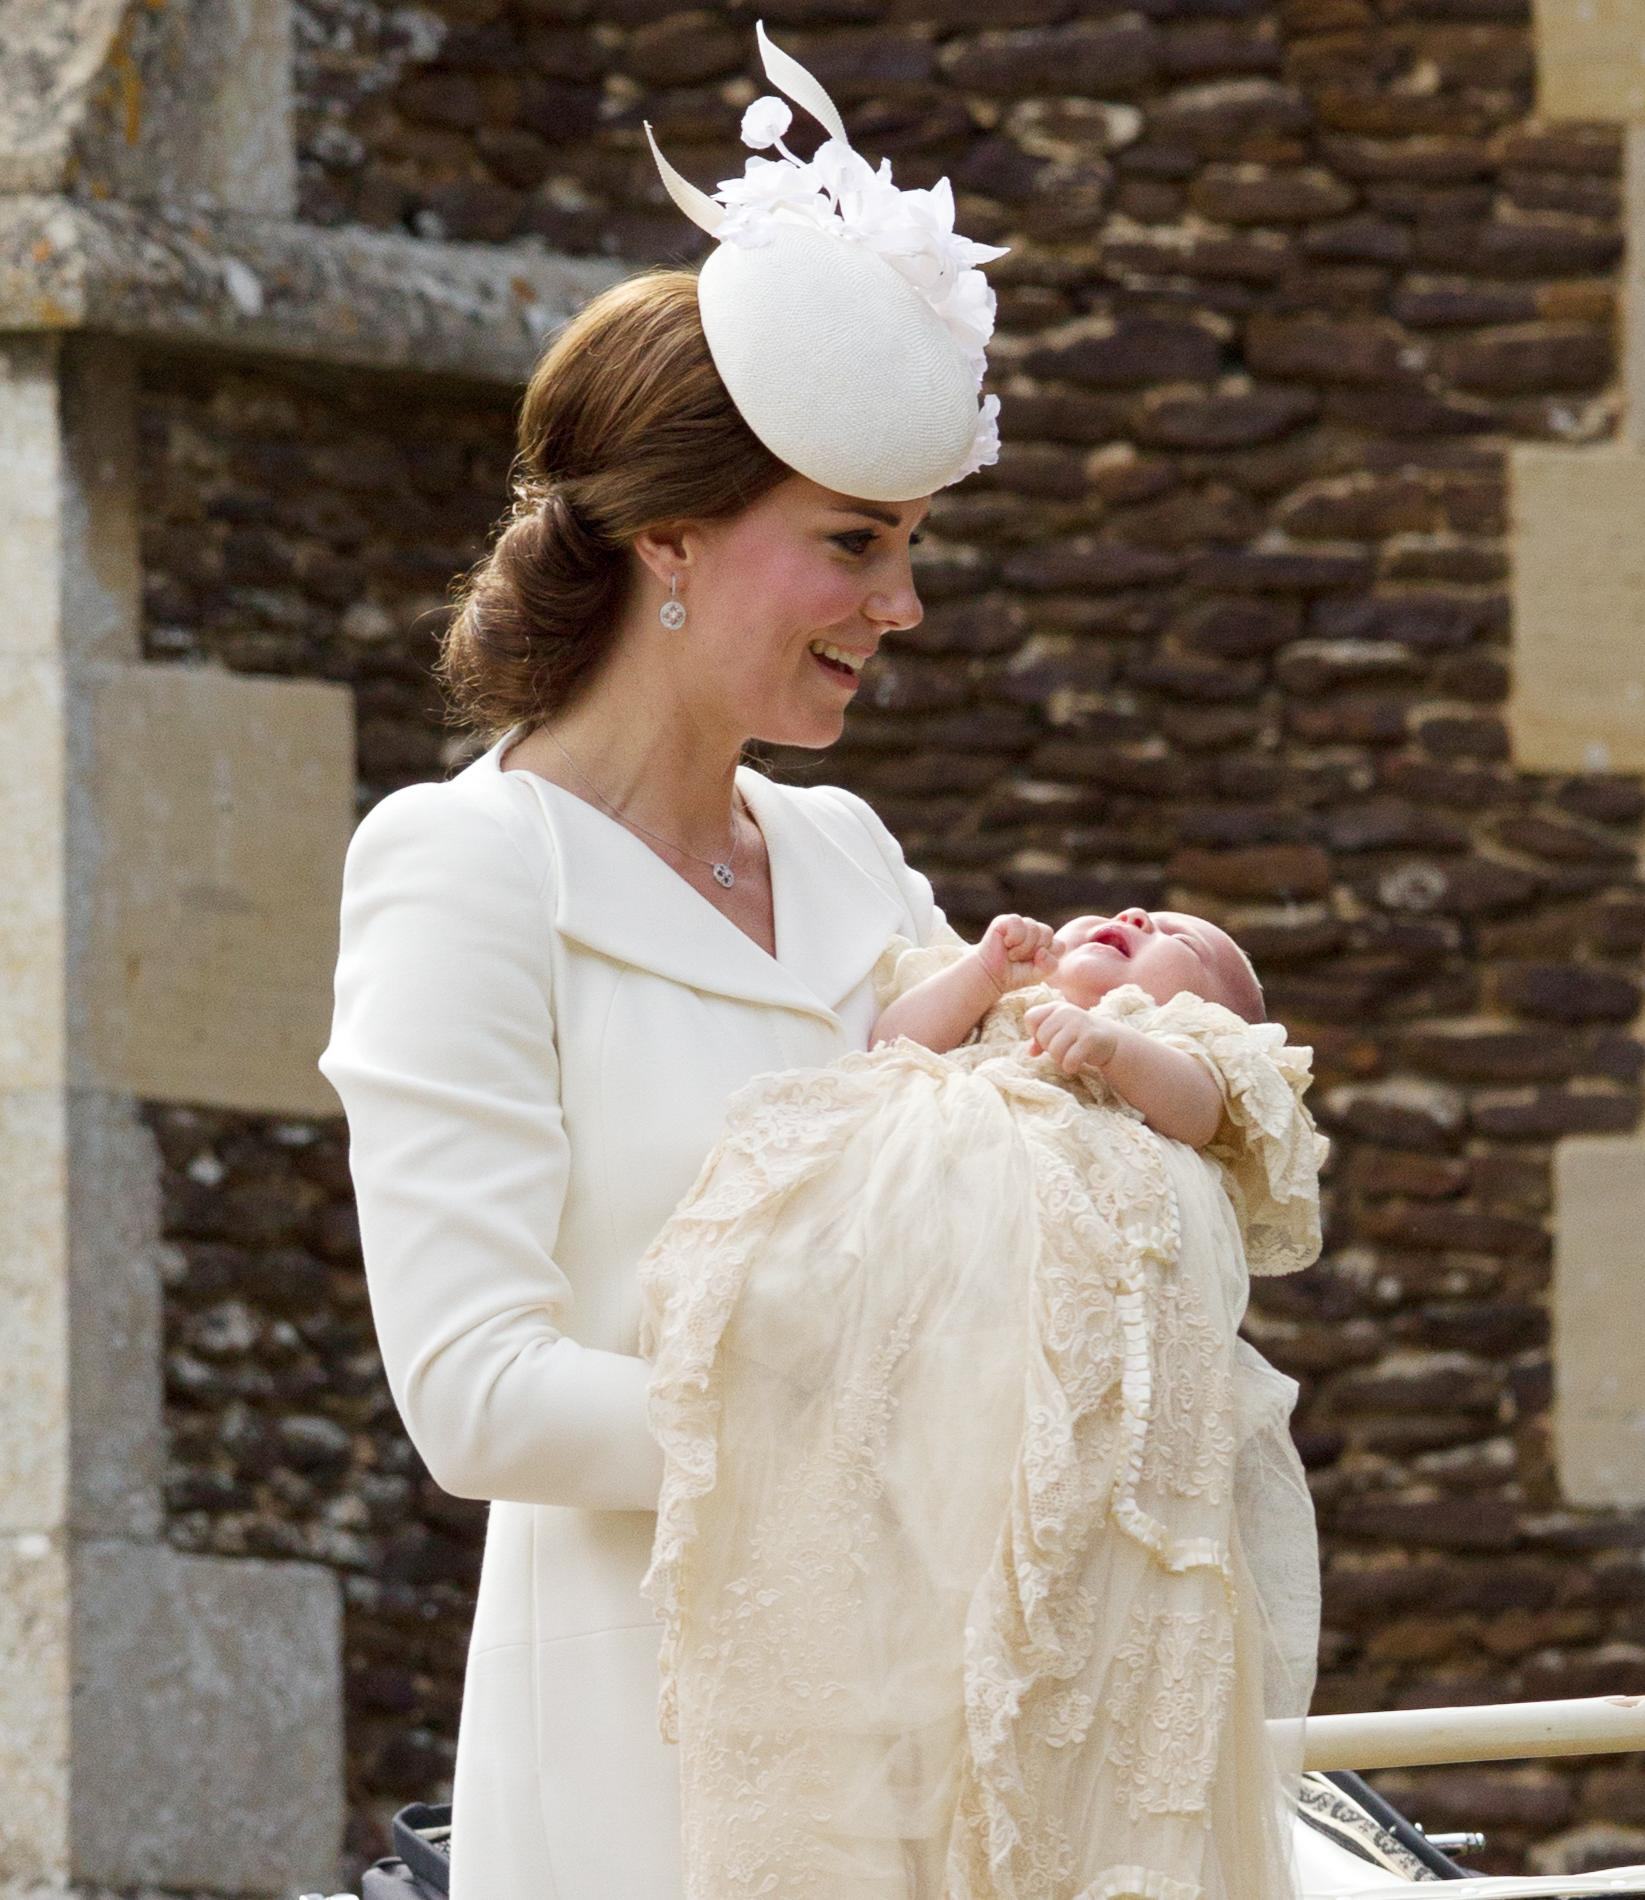 Kate Middleton et Charlotte de Cambridge : une mère et sa fille très assorties